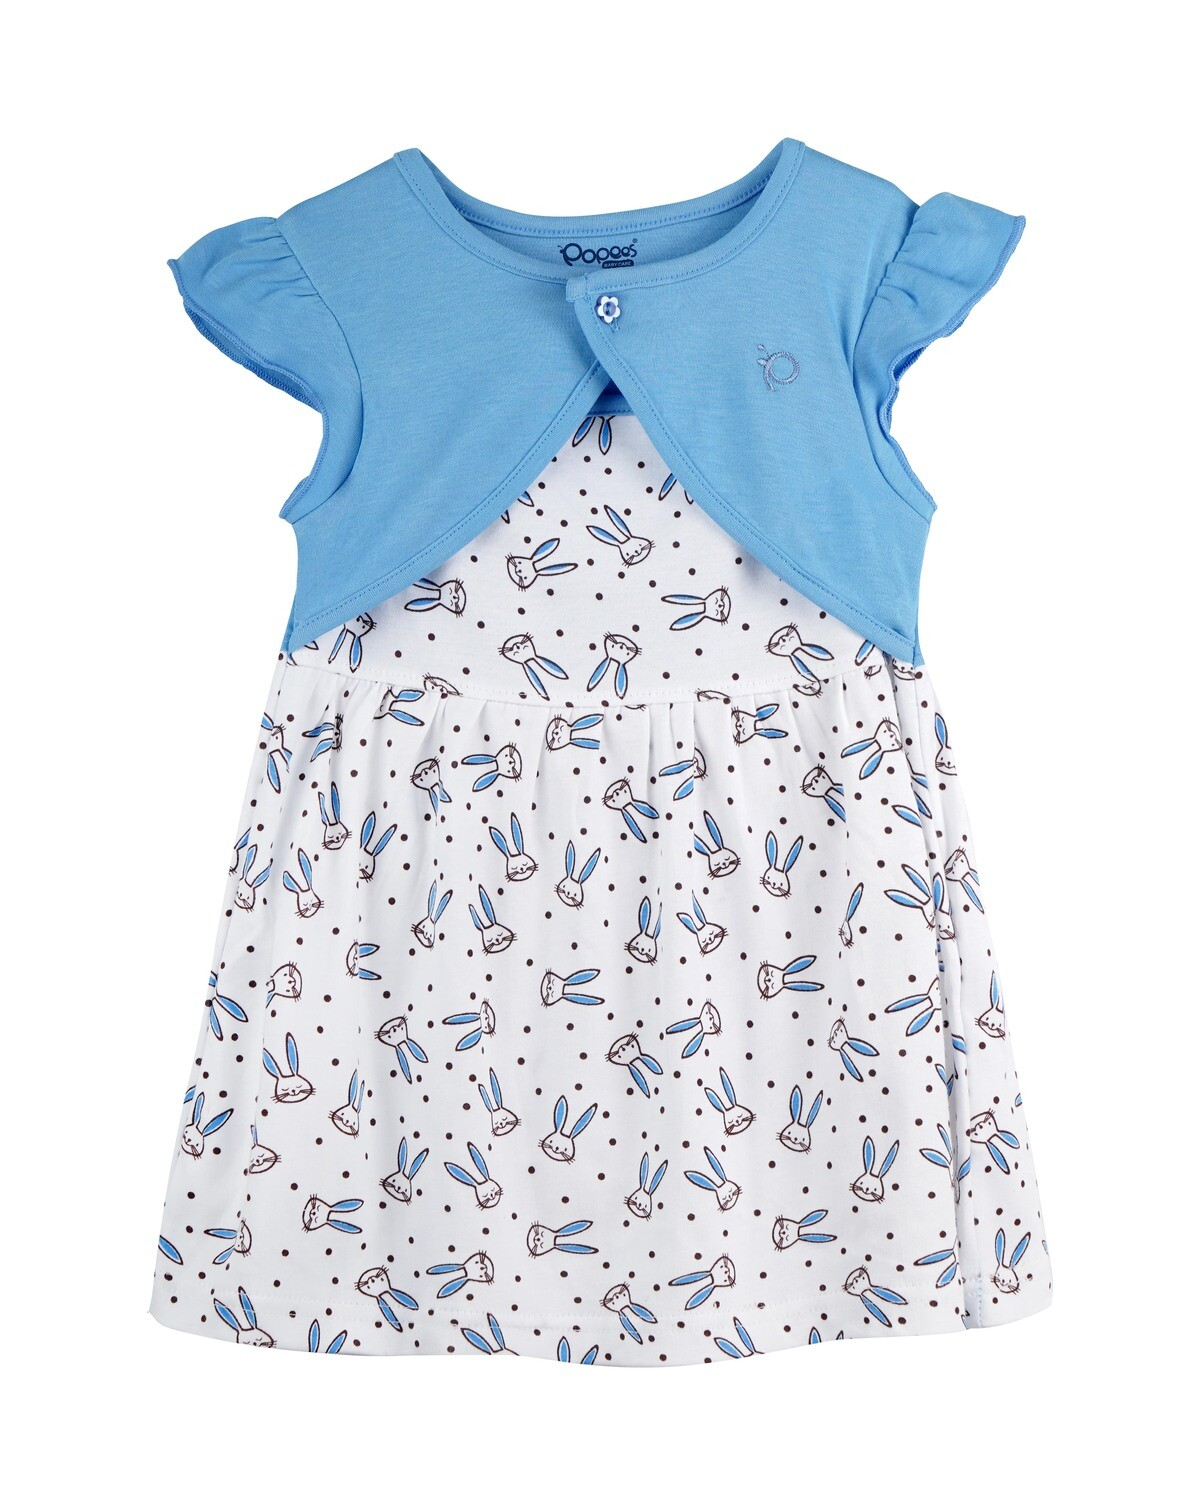 NIFFY Dark Blue Interlock Frock and Panties for Baby Girls